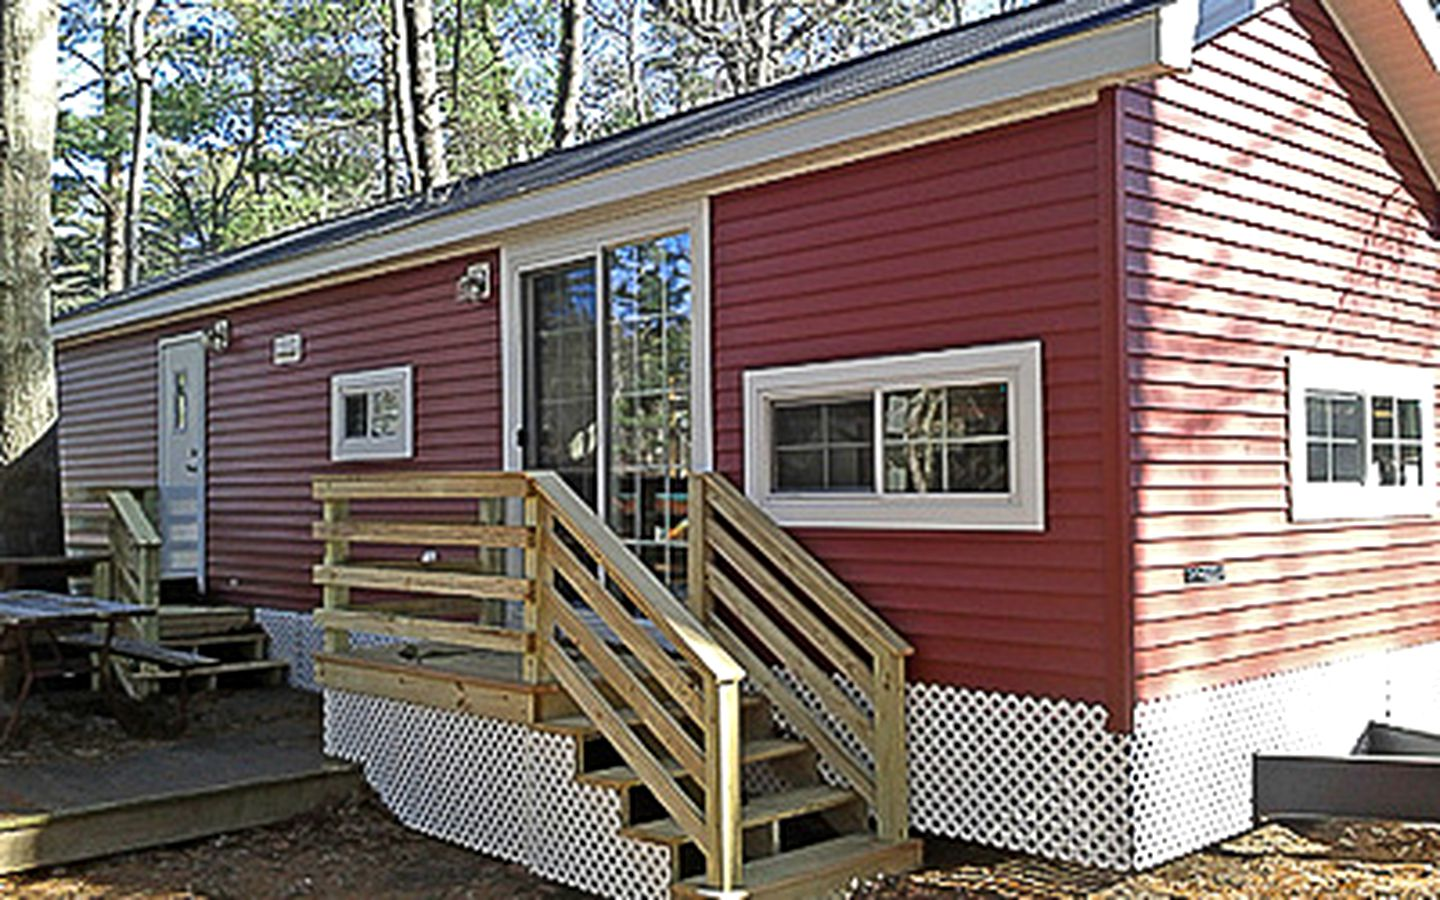 Falmouth cabins offering lakeside fishing in Cape Cod